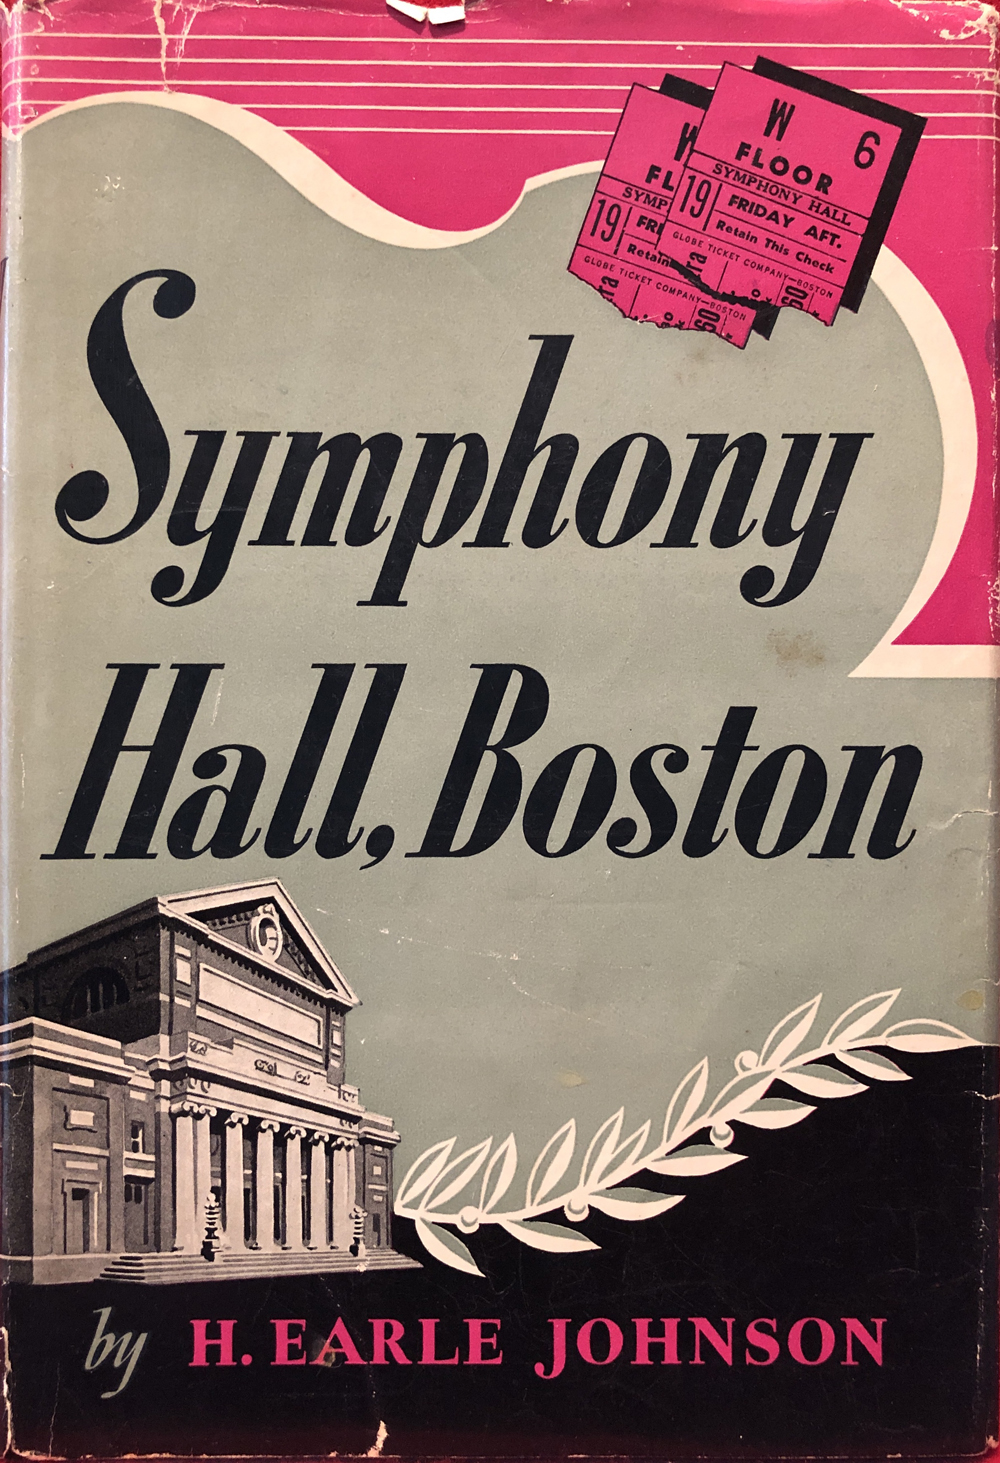 Johnson_Symphony_Hall_Boston_1950